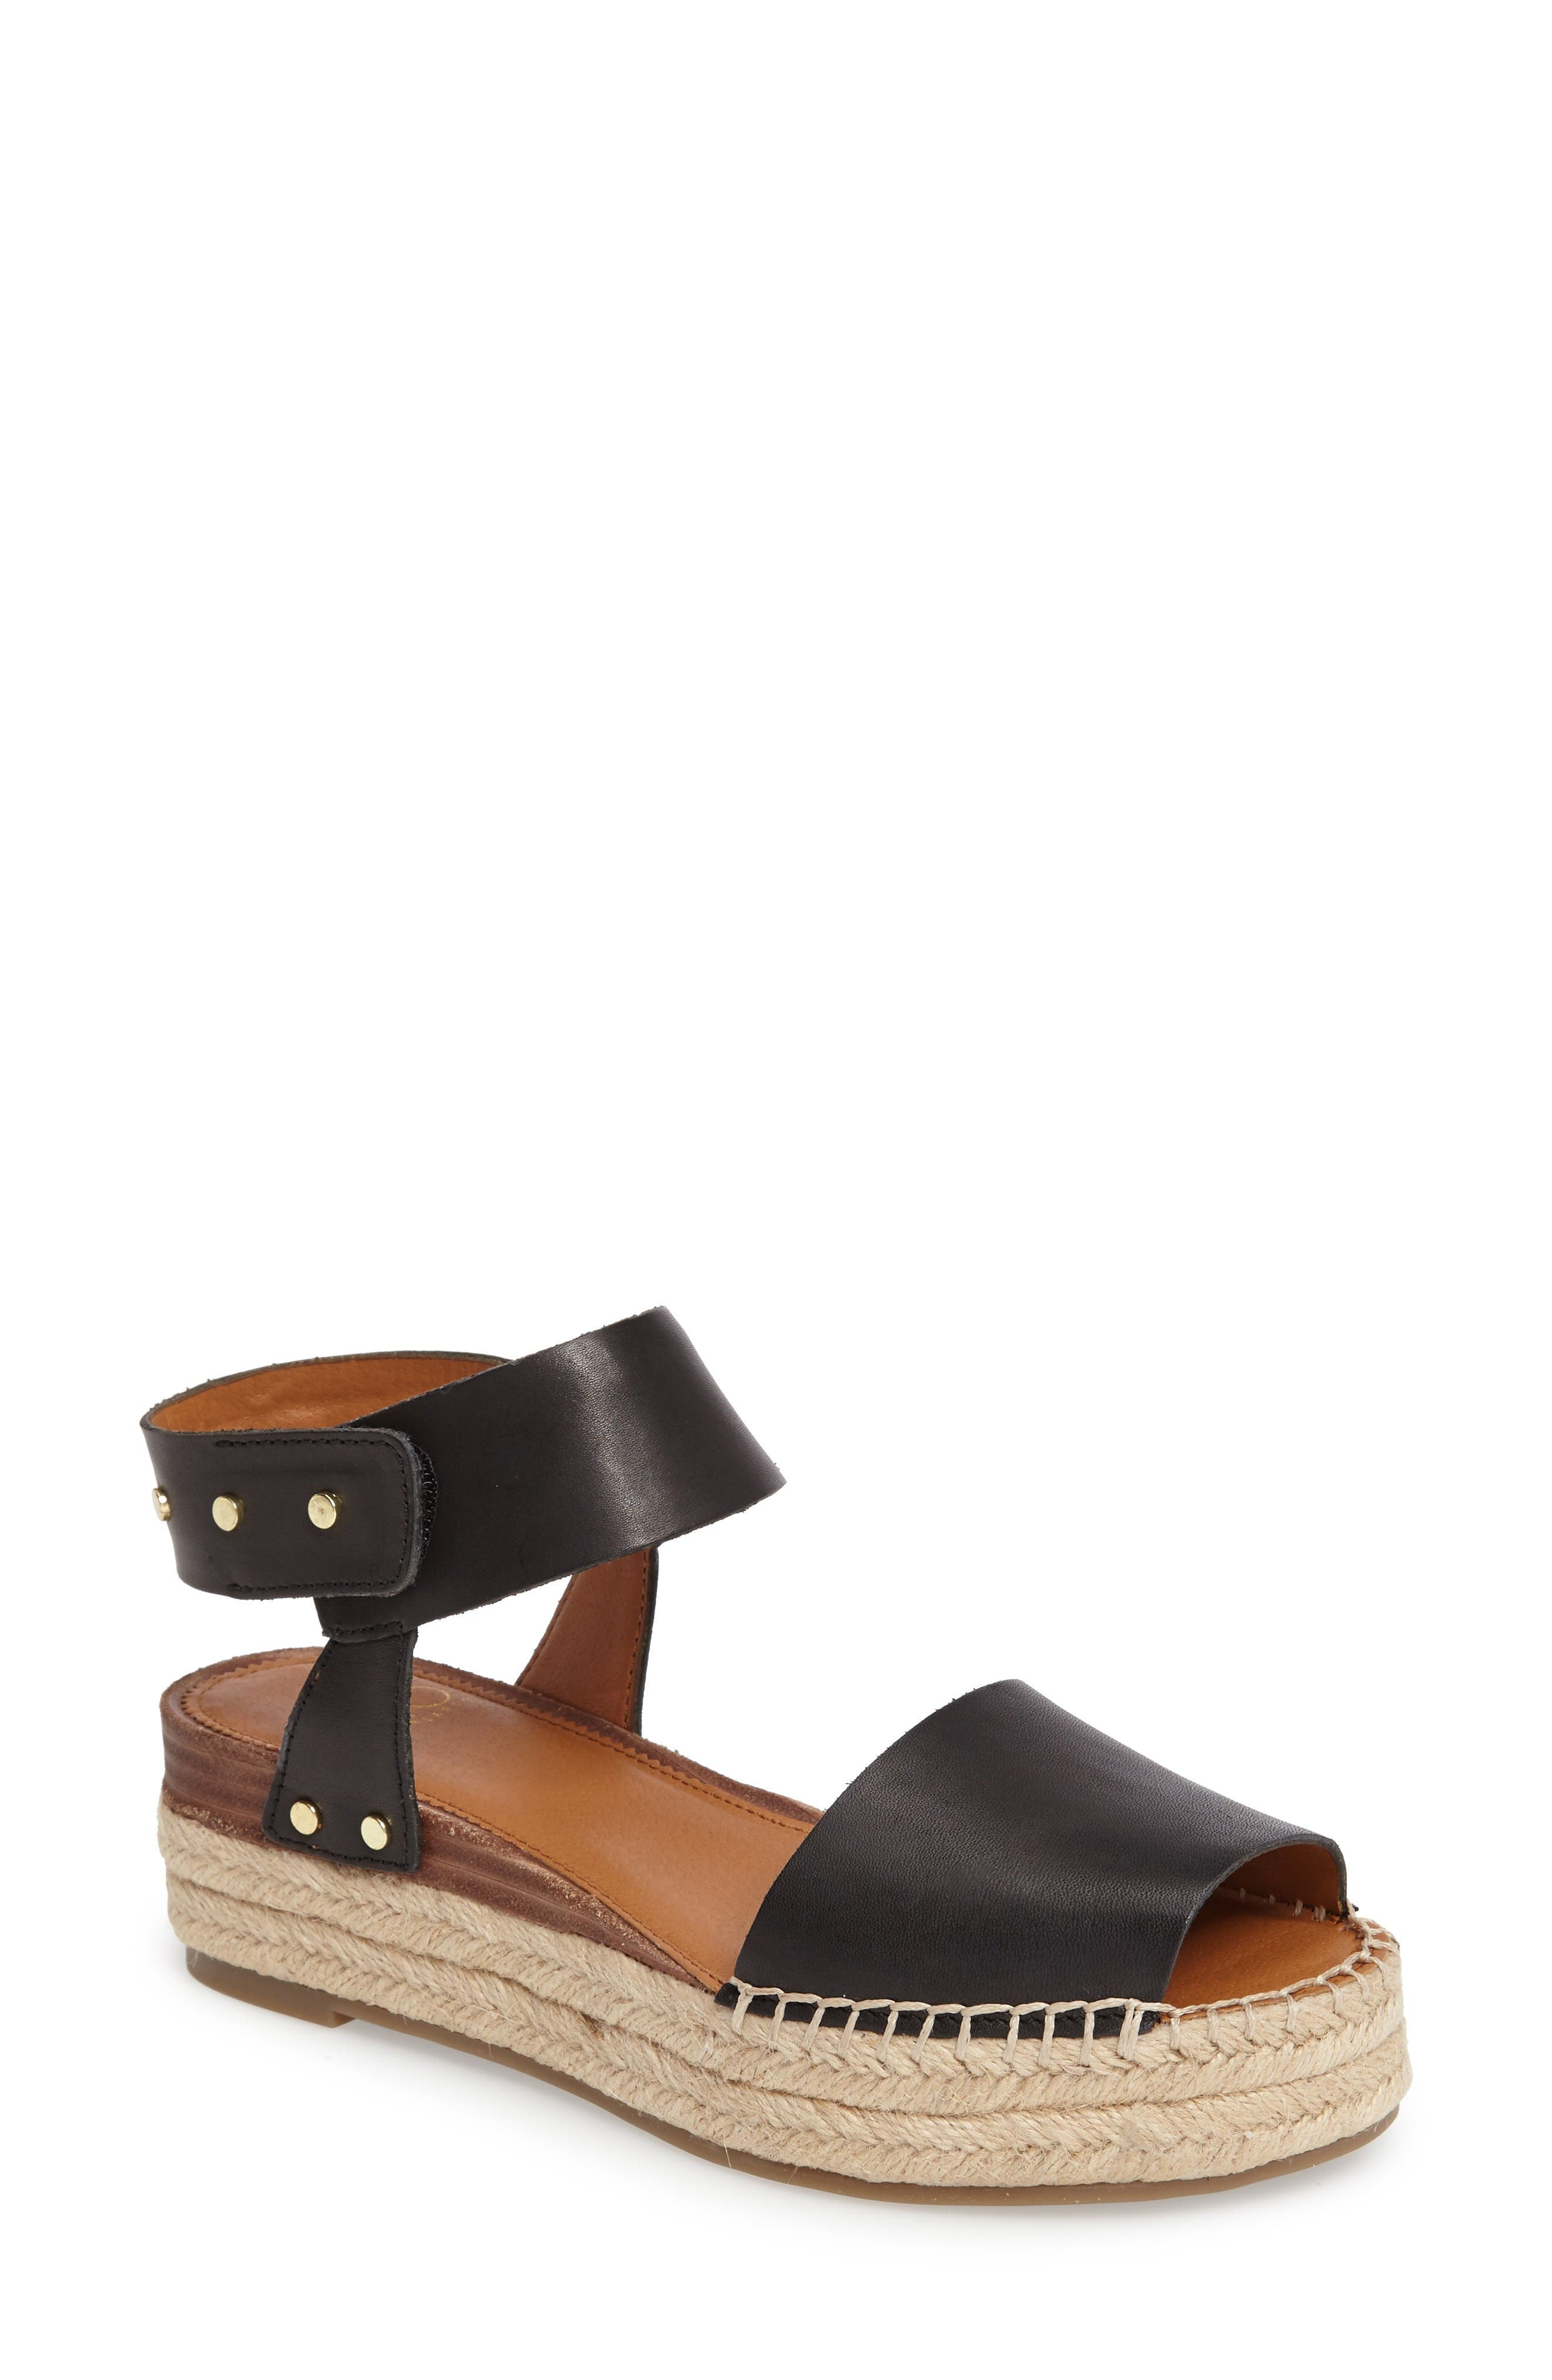 Main Image - SARTO by Franco Sarto Oak Platform Wedge Espadrille (Women)